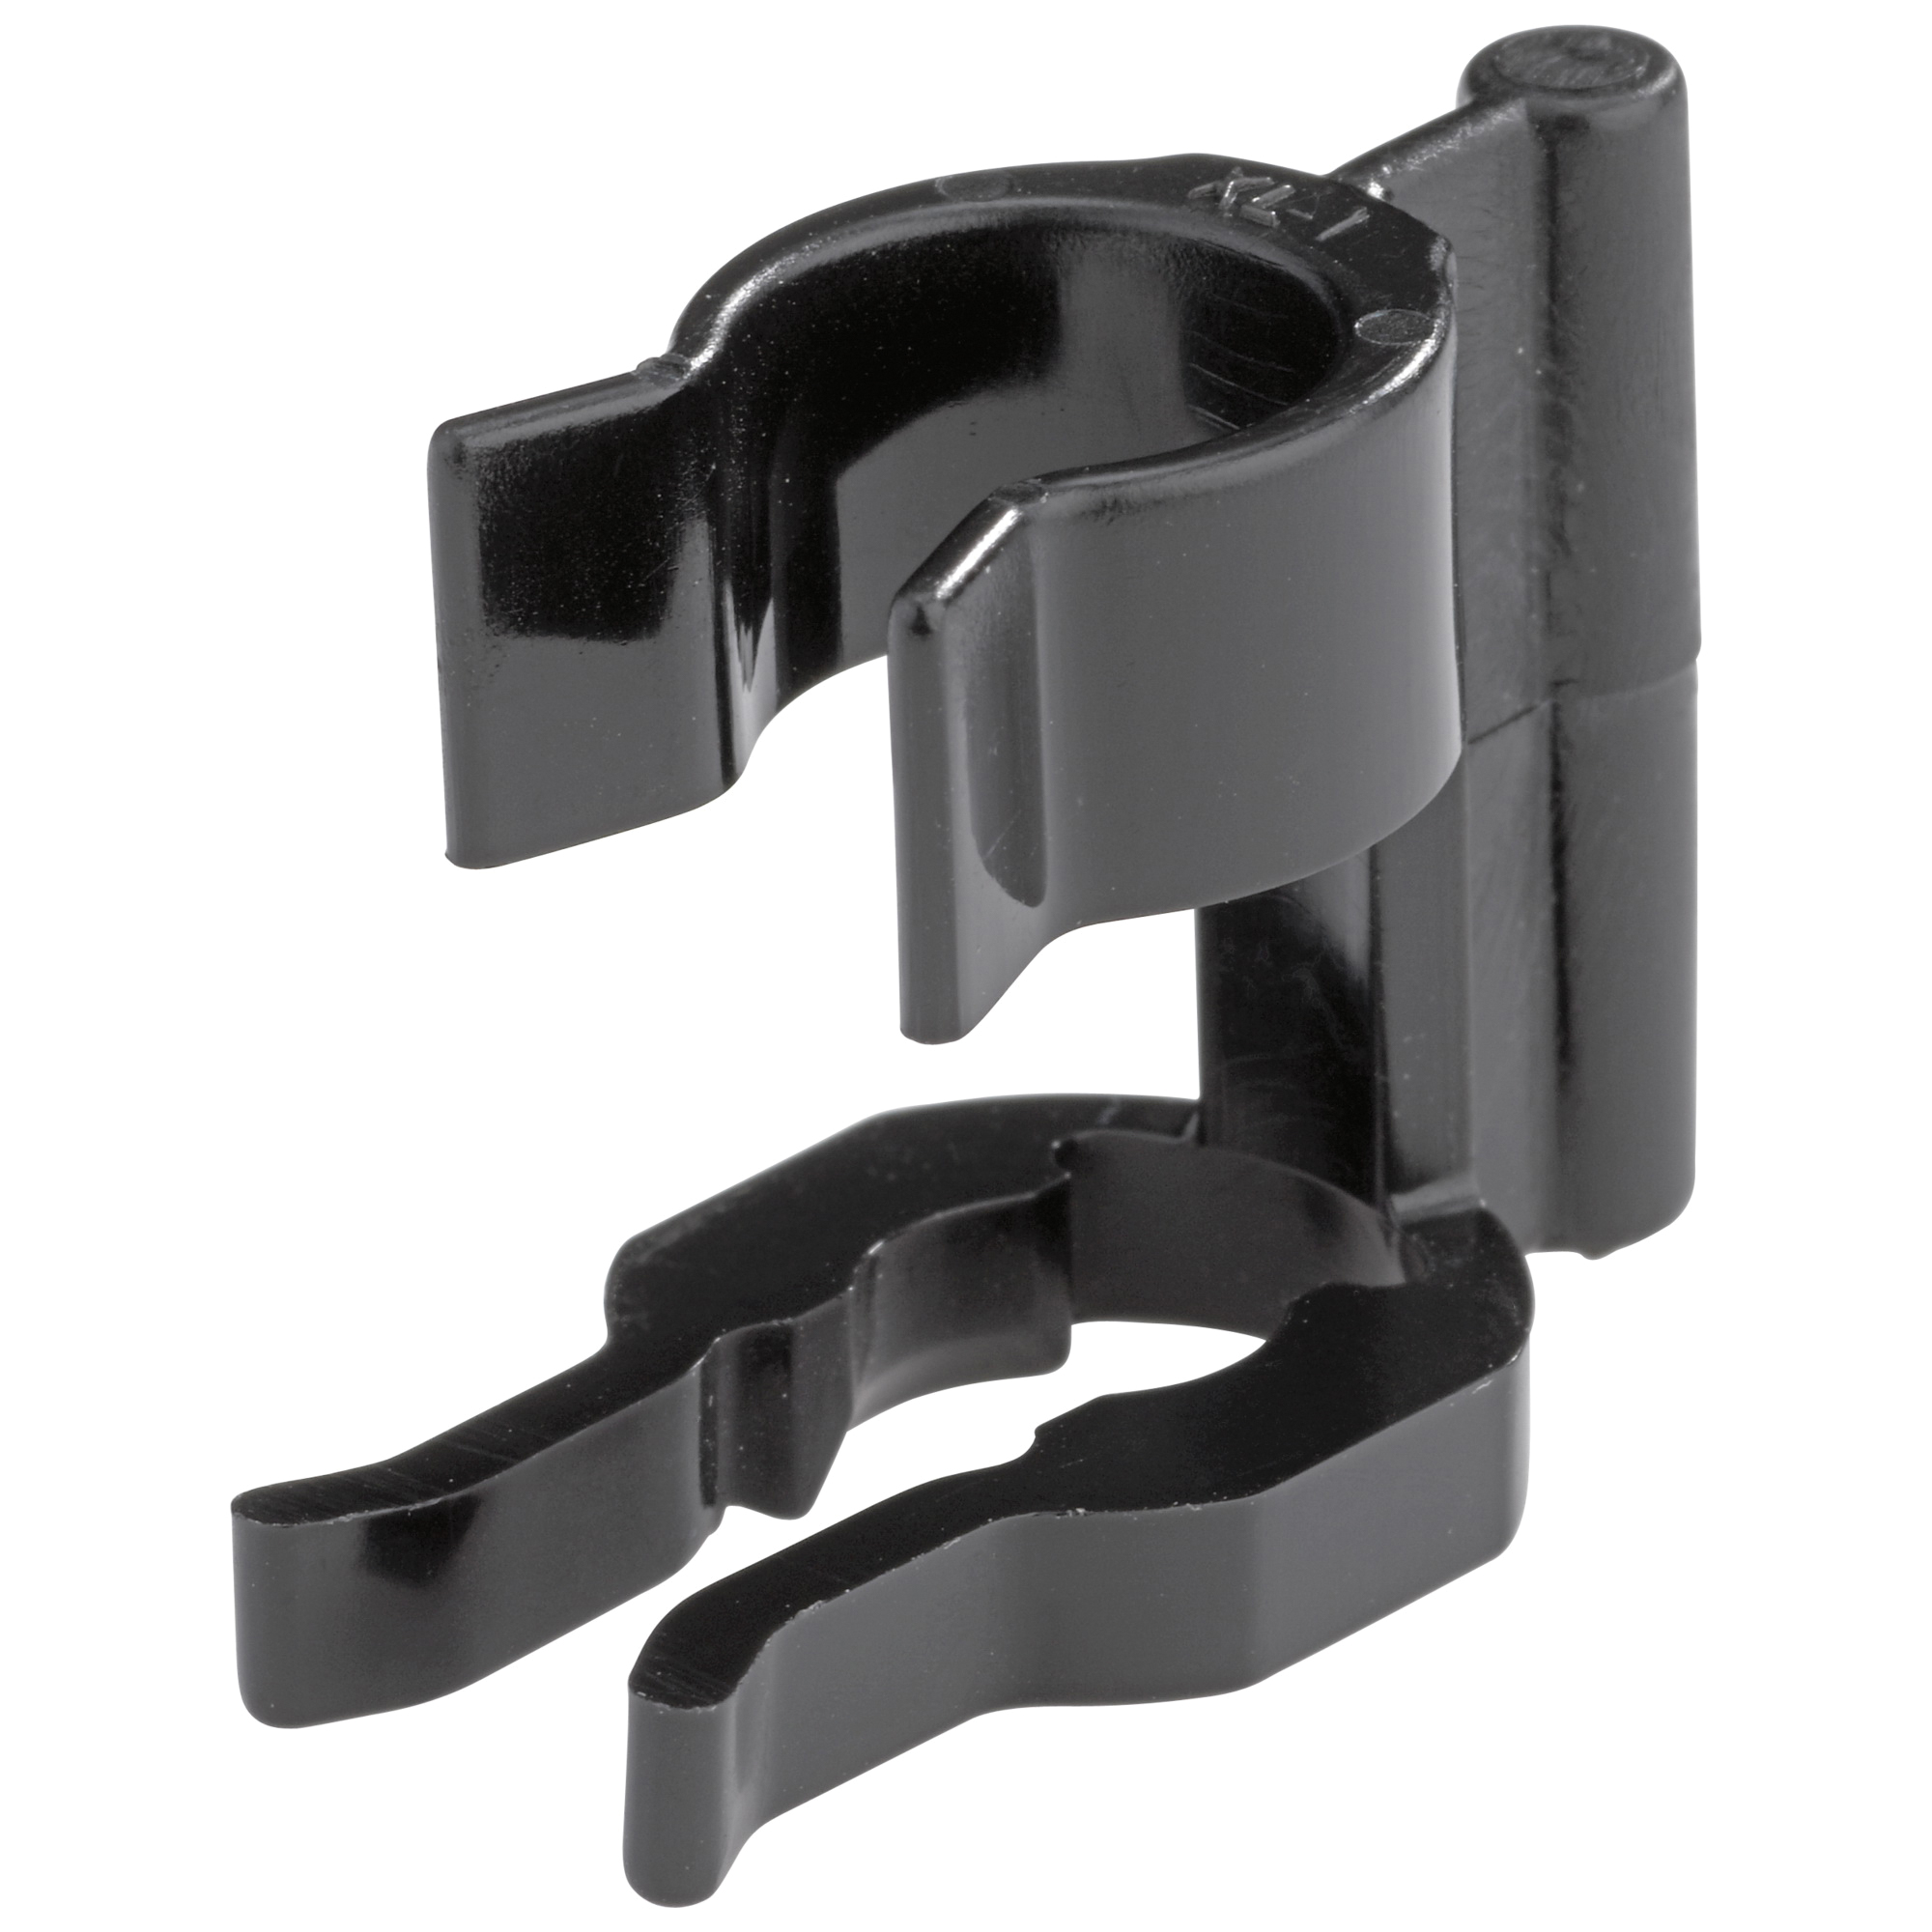 Delta Rp32522 Replacement Quick Connect Clip For Use With Non Diamond Seal Pull Out And Pull Down Kitchen Faucet Domestic First Supply